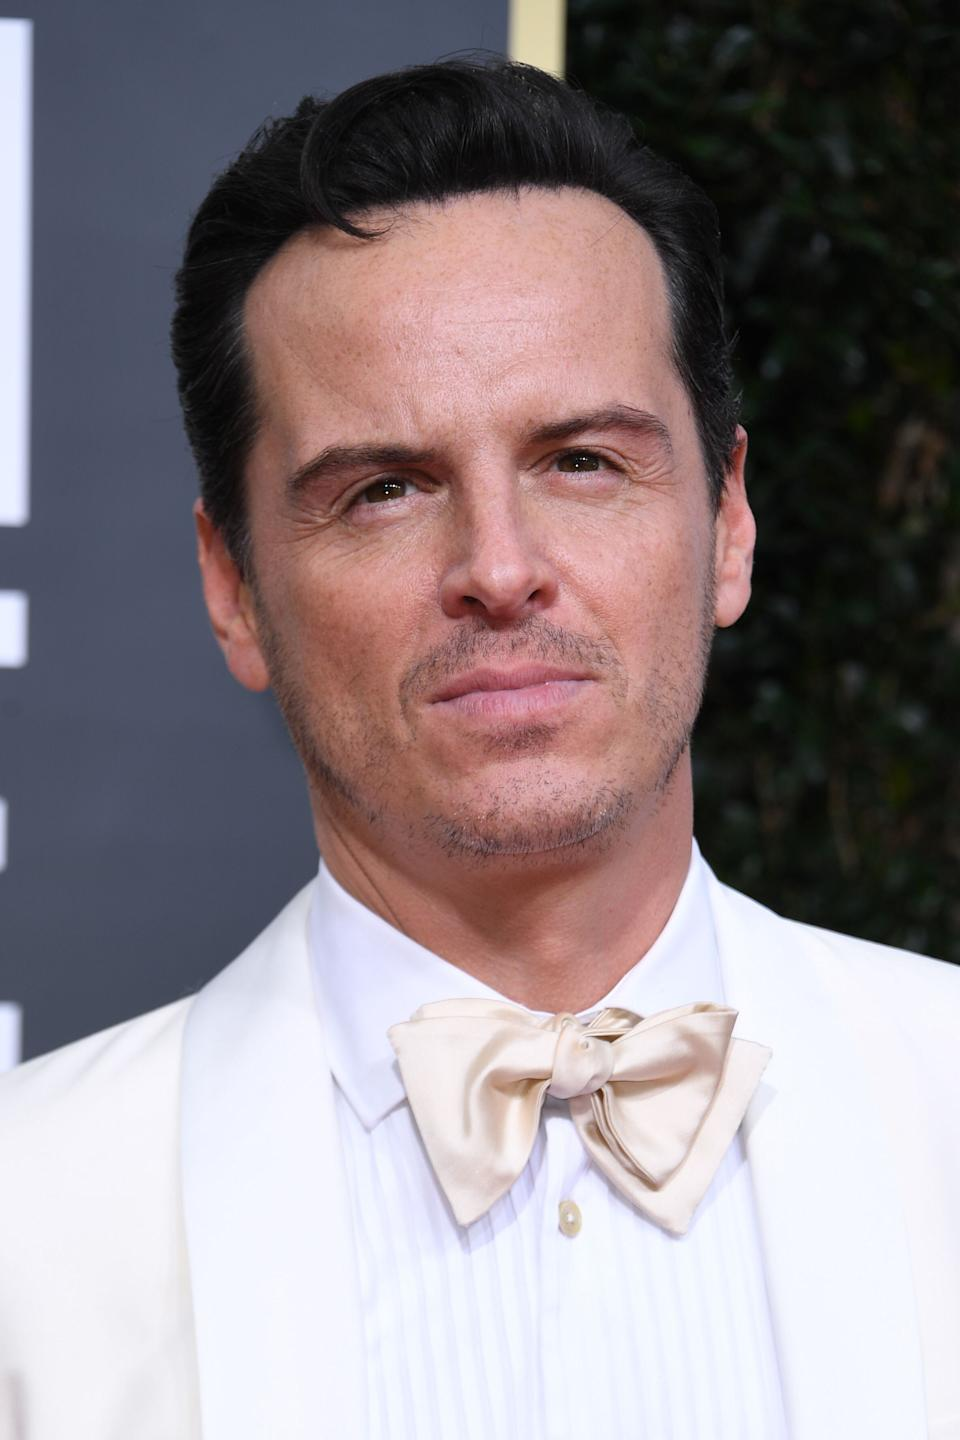 Andrew Scott at last year's Golden Globes (Photo: VALERIE MACON via Getty Images)